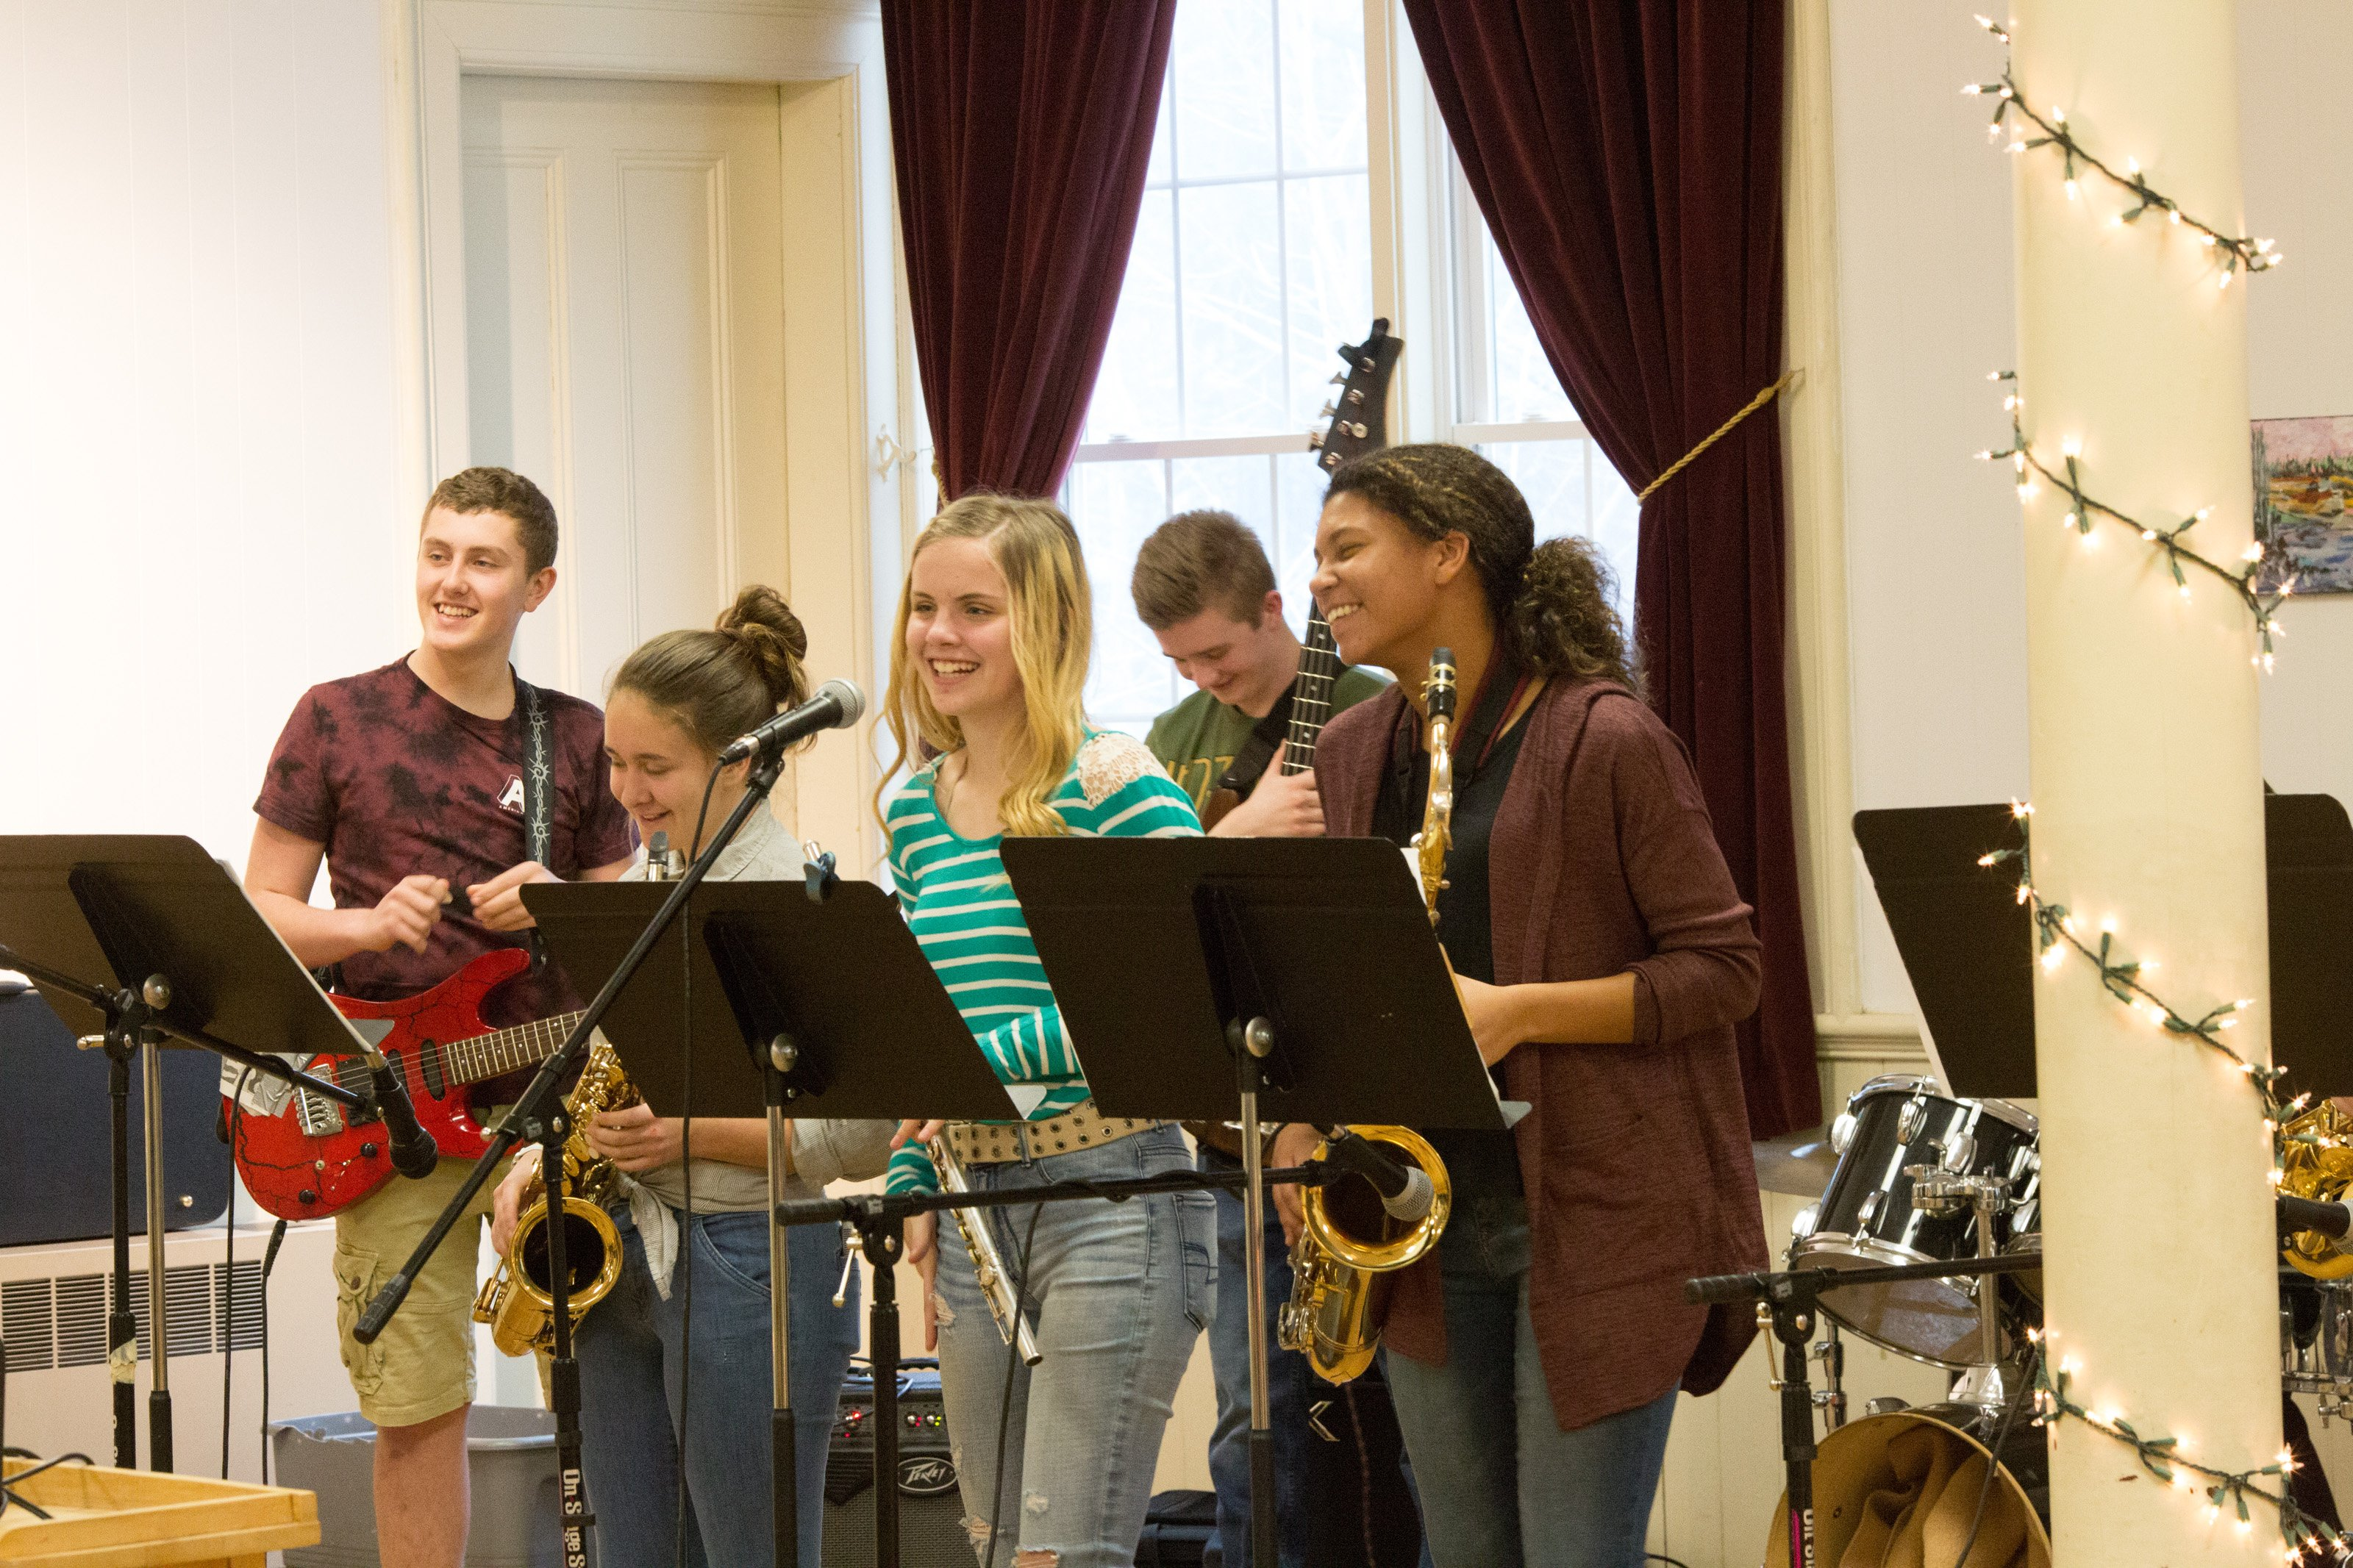 Eastport's Shead High School Jazz Band performs for the EAC's Sunday Afternoons at the Arts Center series.